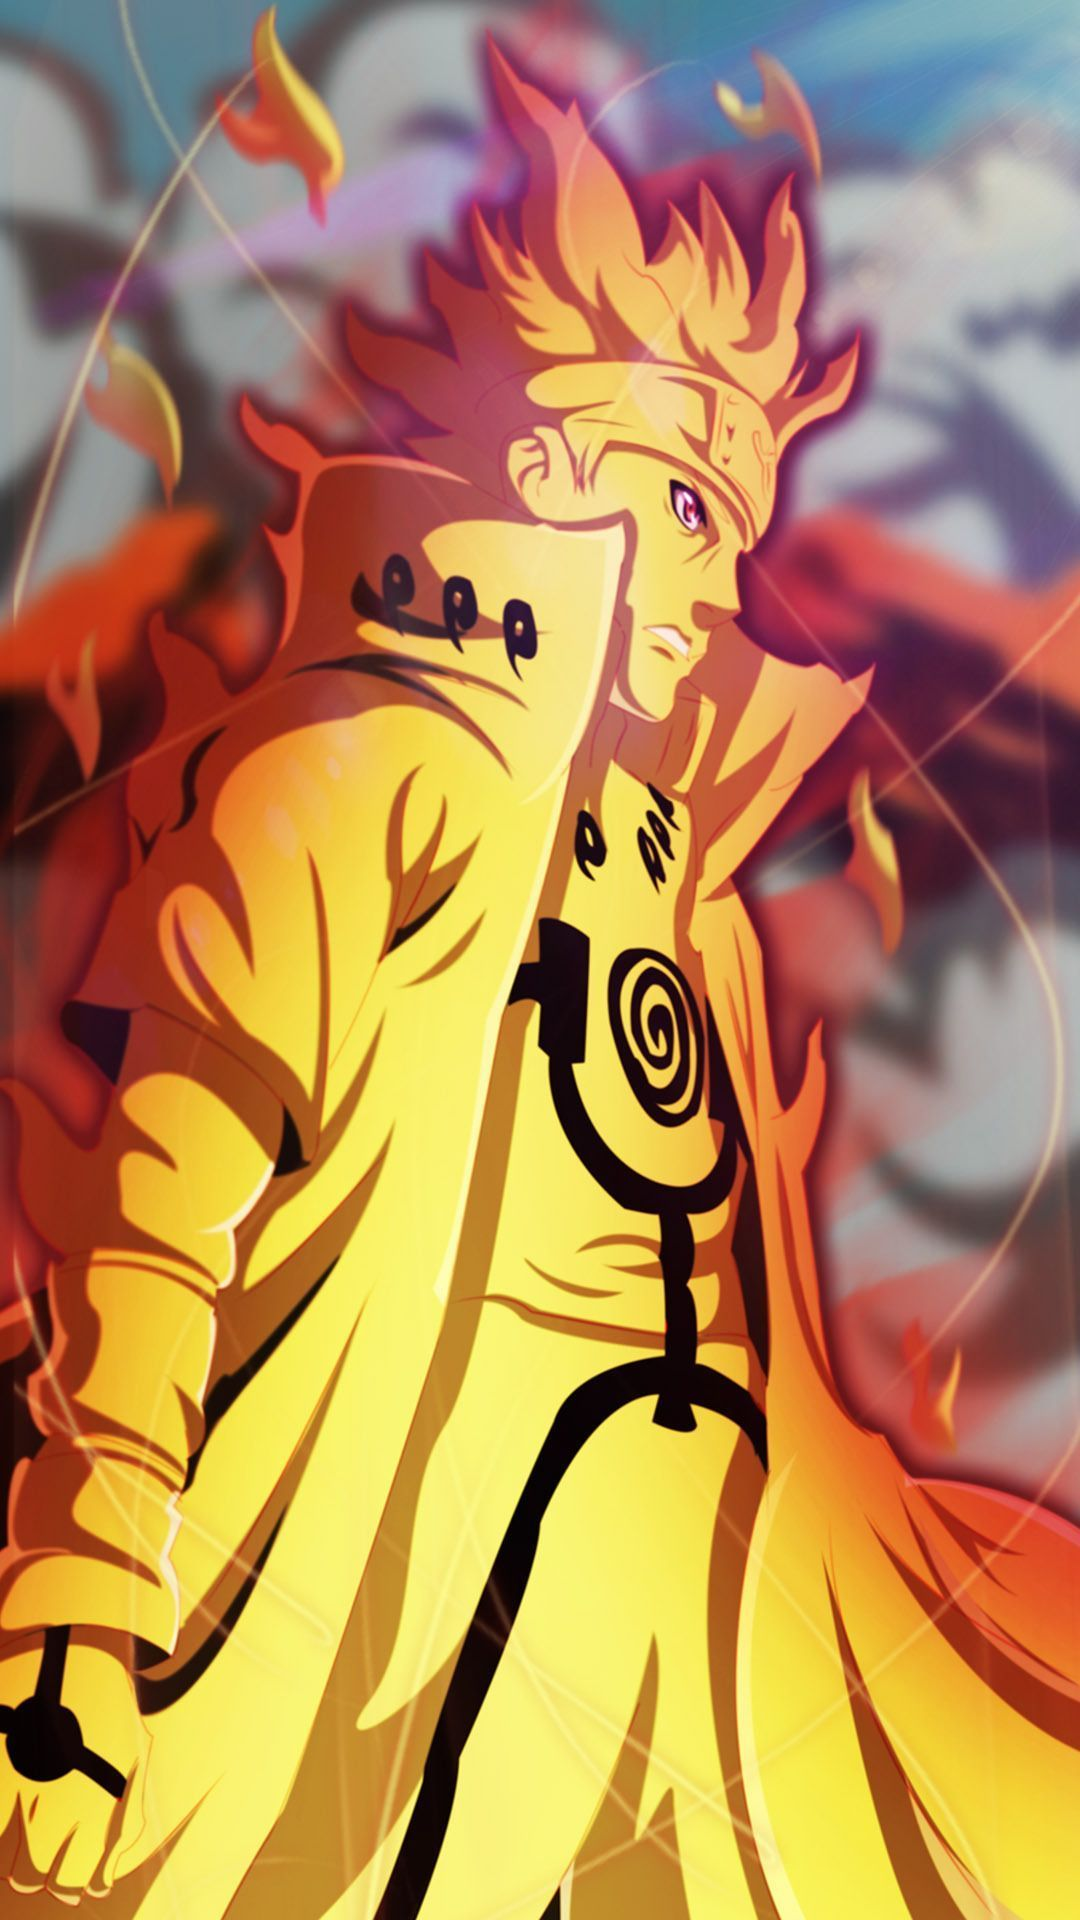 Naruto Shippuden Iphone Android Iphone Desktop Hd Backgrounds